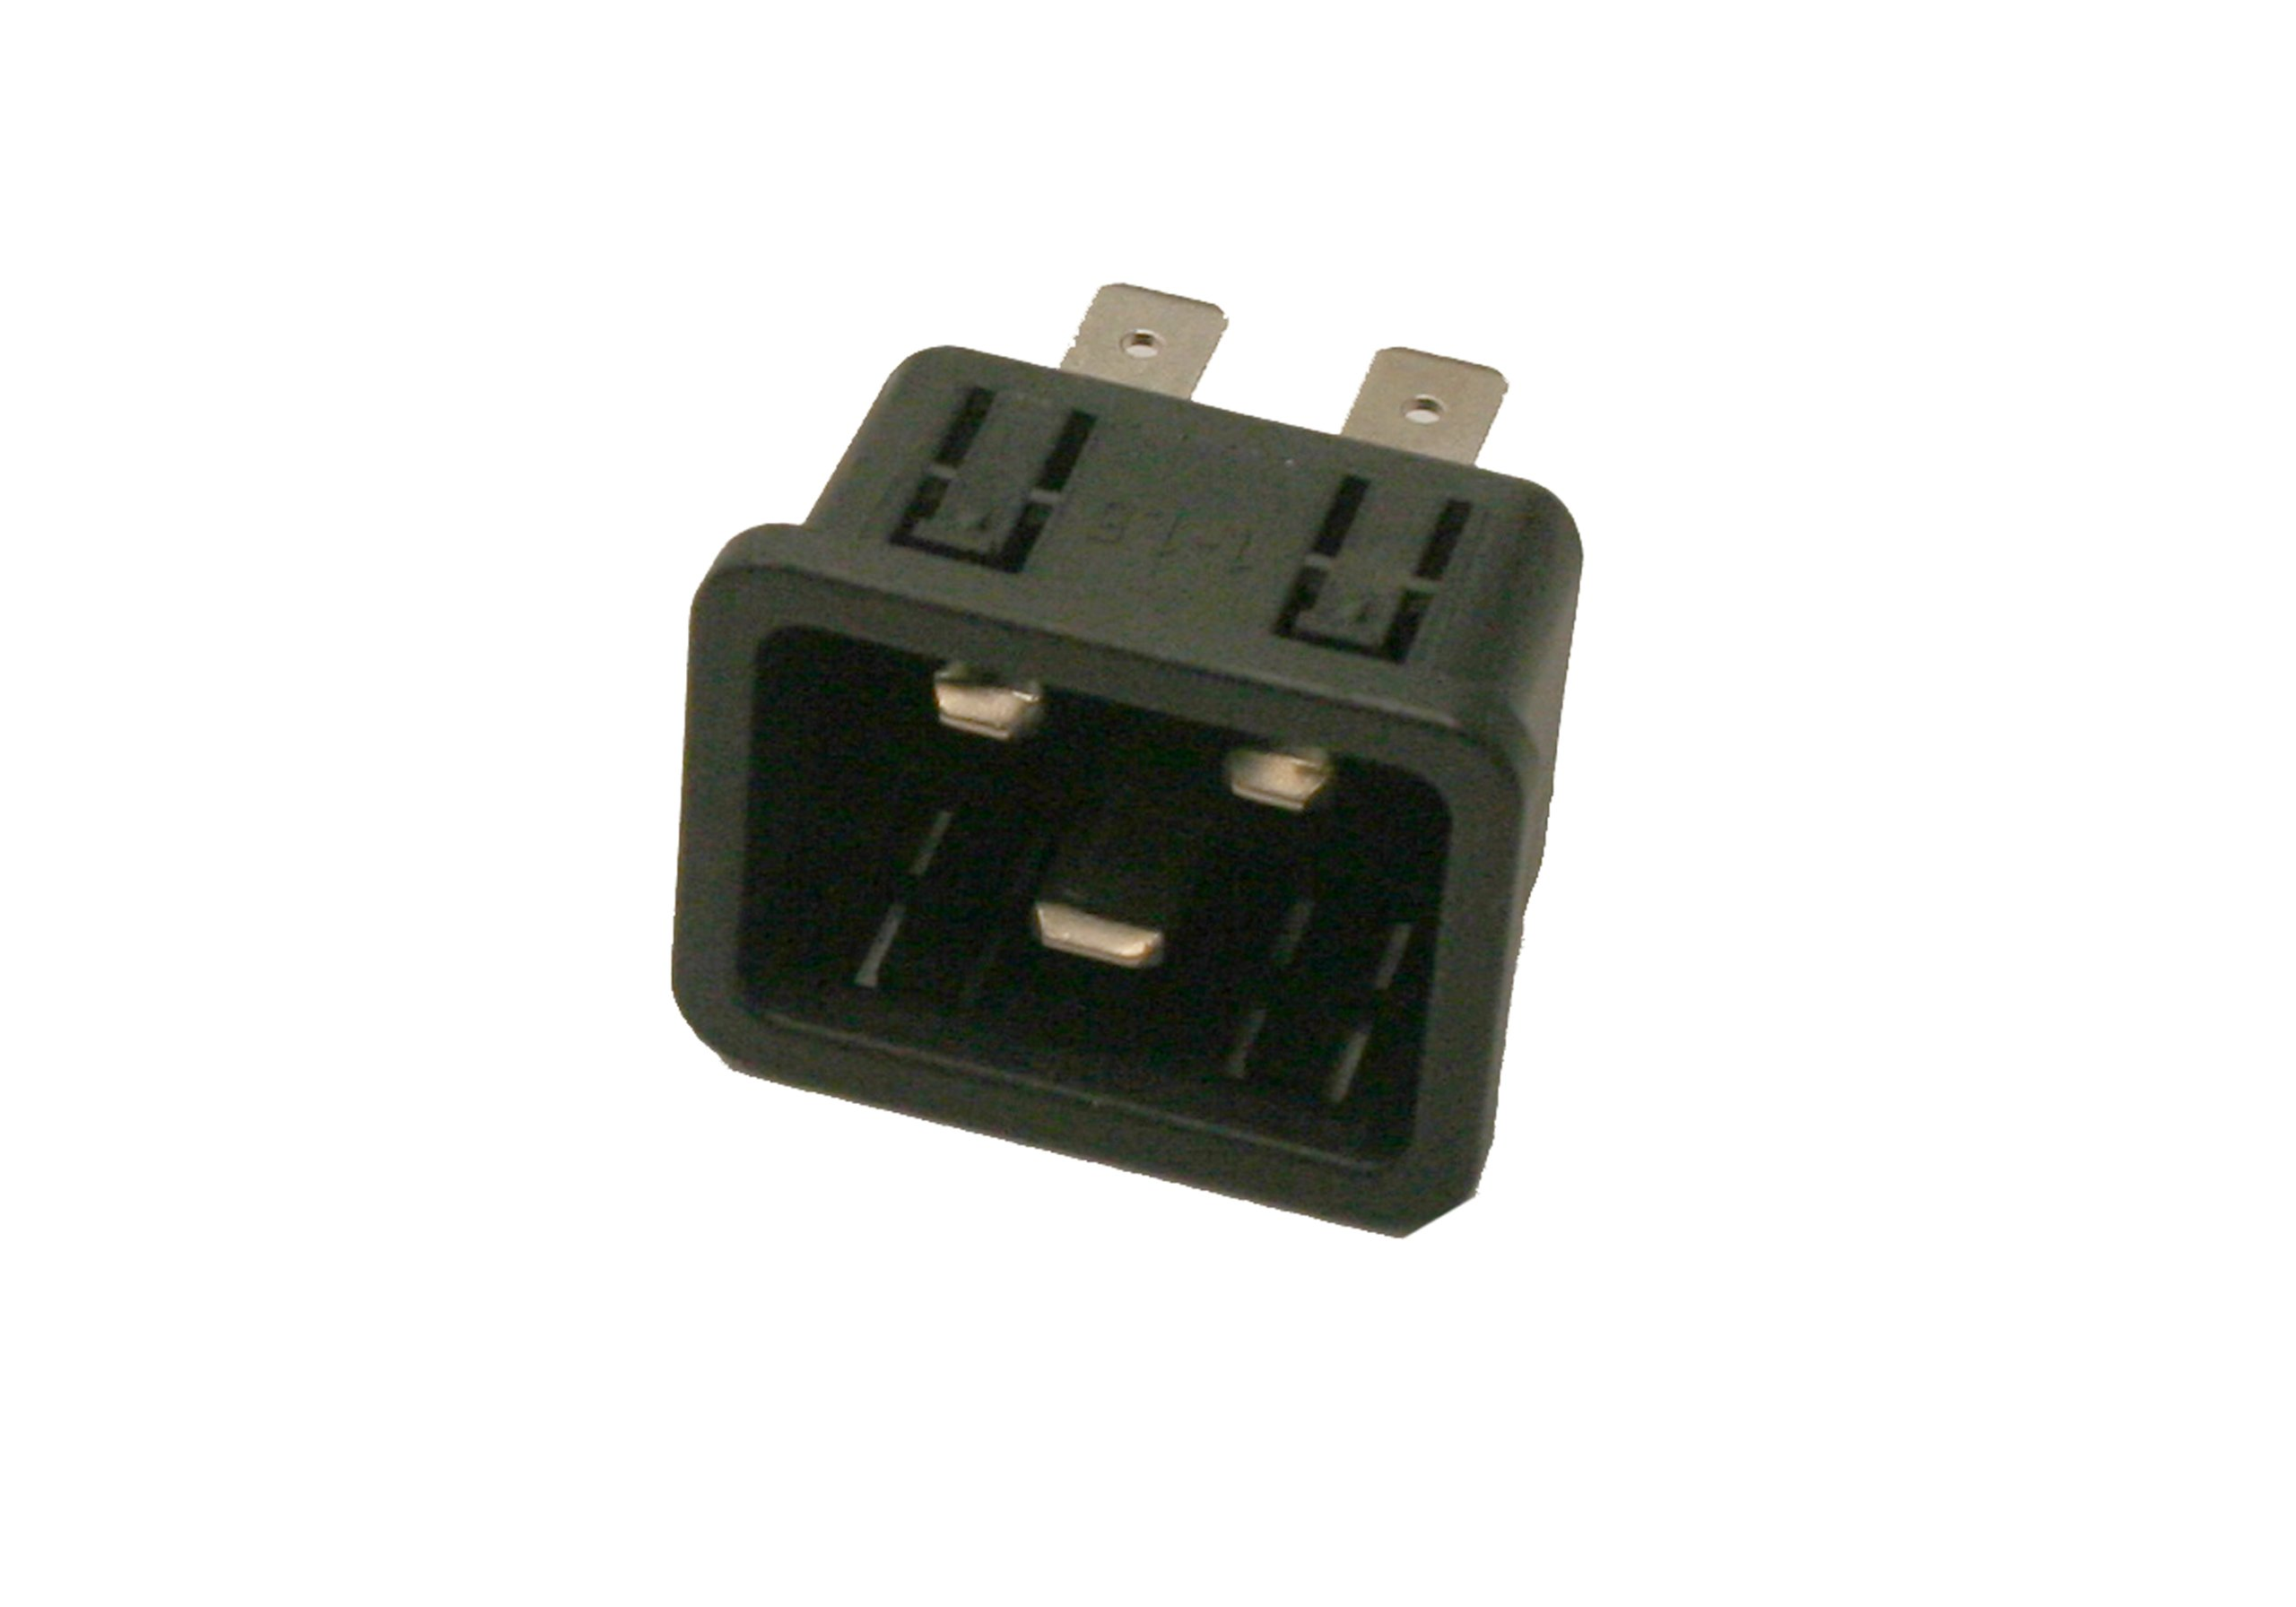 Interpower 83030420 IEC 60320 C20 Power Inlet With Quick Disconnects, IEC 60320 C20 Socket Type, 1-1.5mm/18 Gauge Panel Thickness, Black, 16A/20A Rating, 250VAC Rating by Interpower